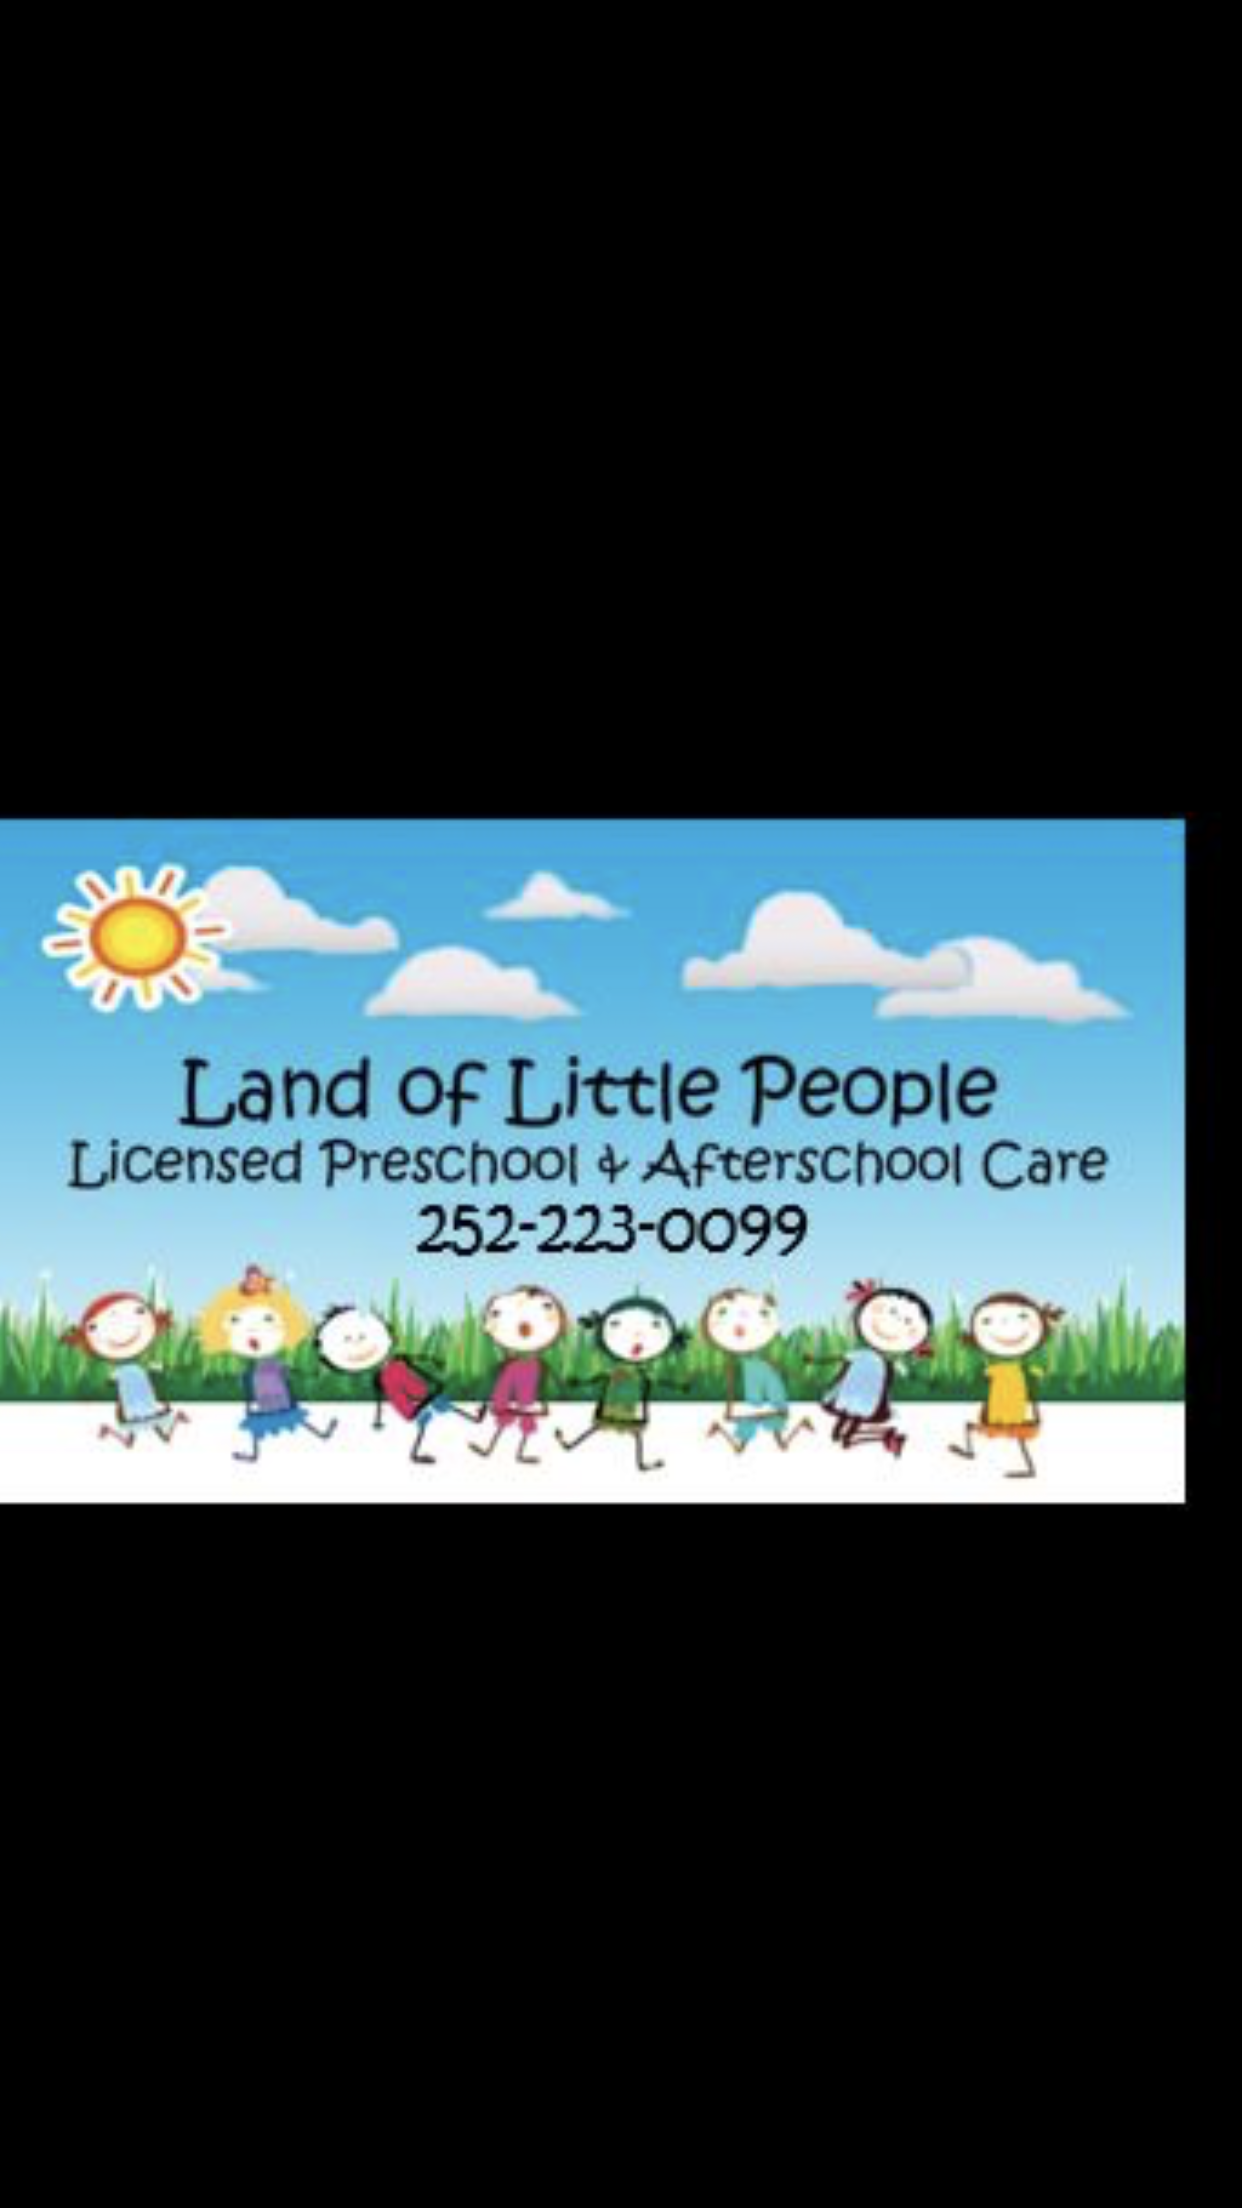 LAND OF LITTLE PEOPLE PRESCHOOL